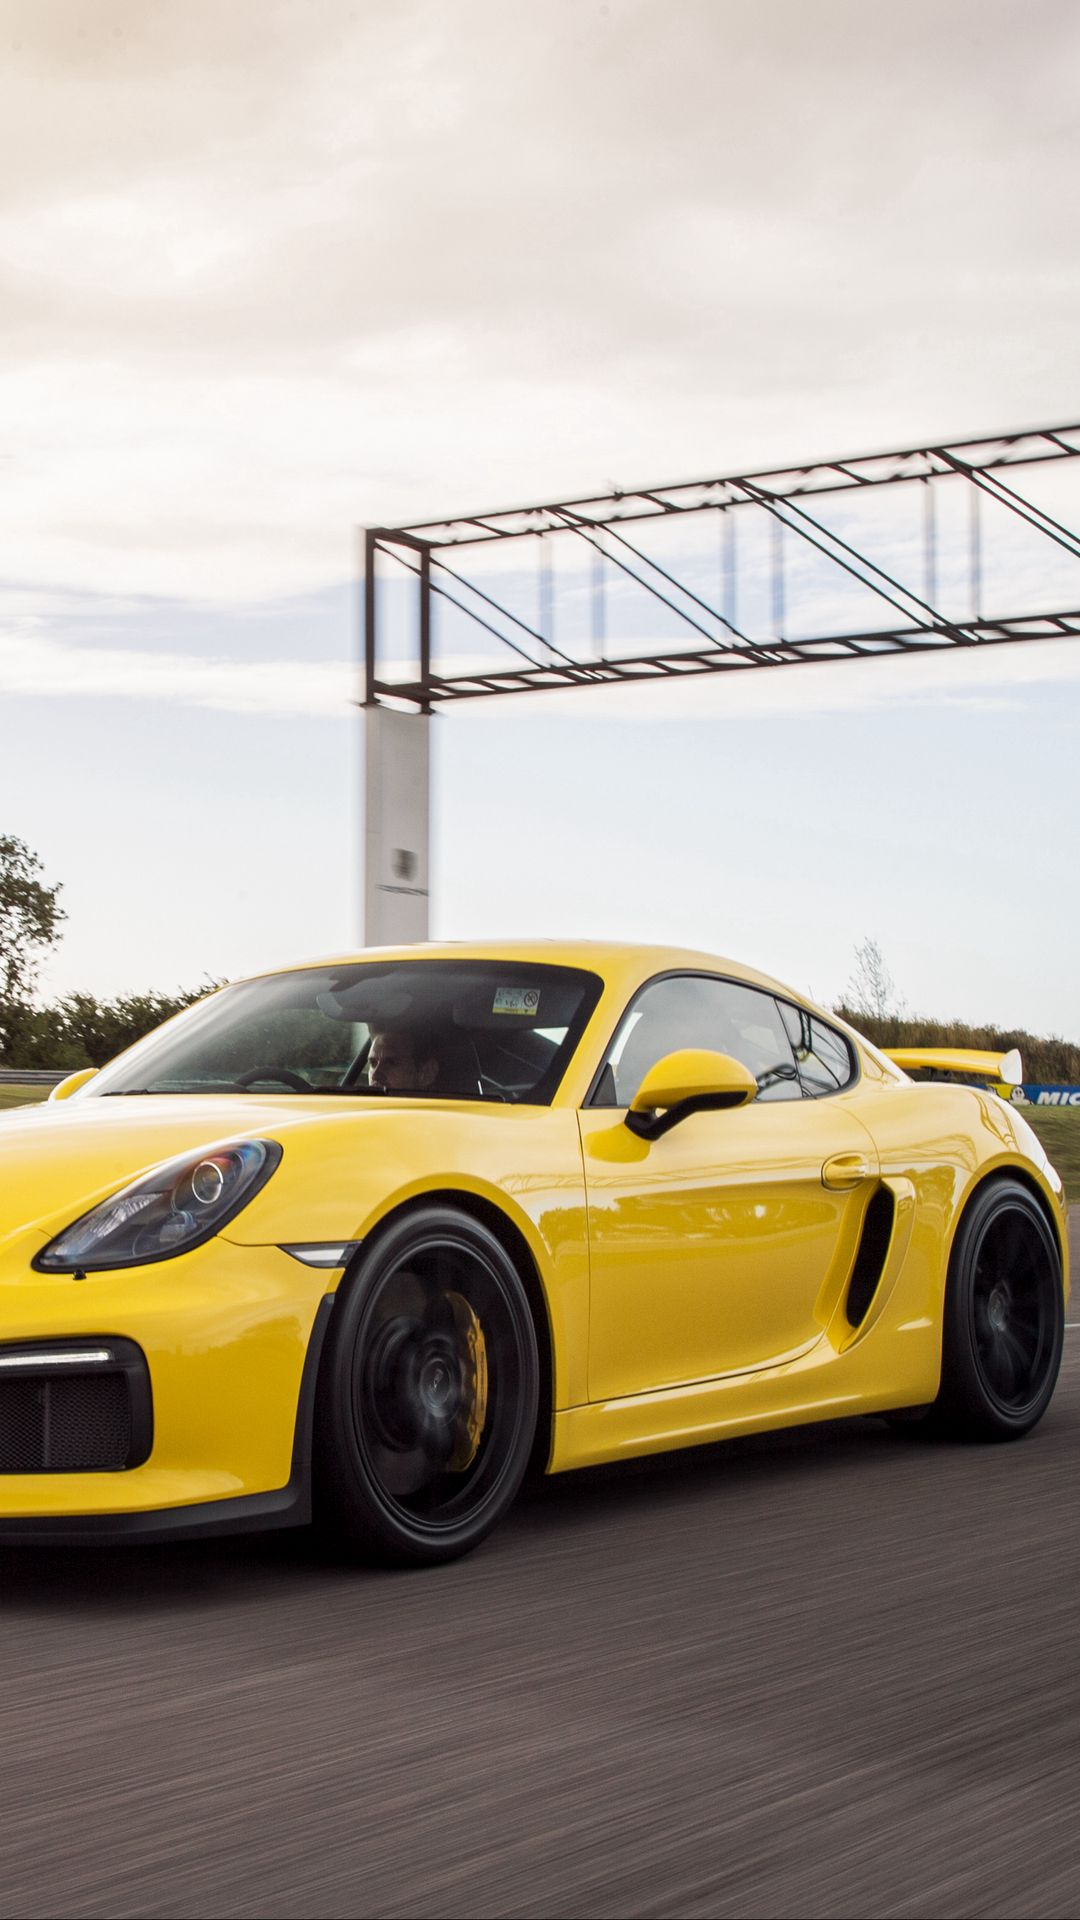 Porsche Cayman GT4 Wallpapers Download for Apple Background